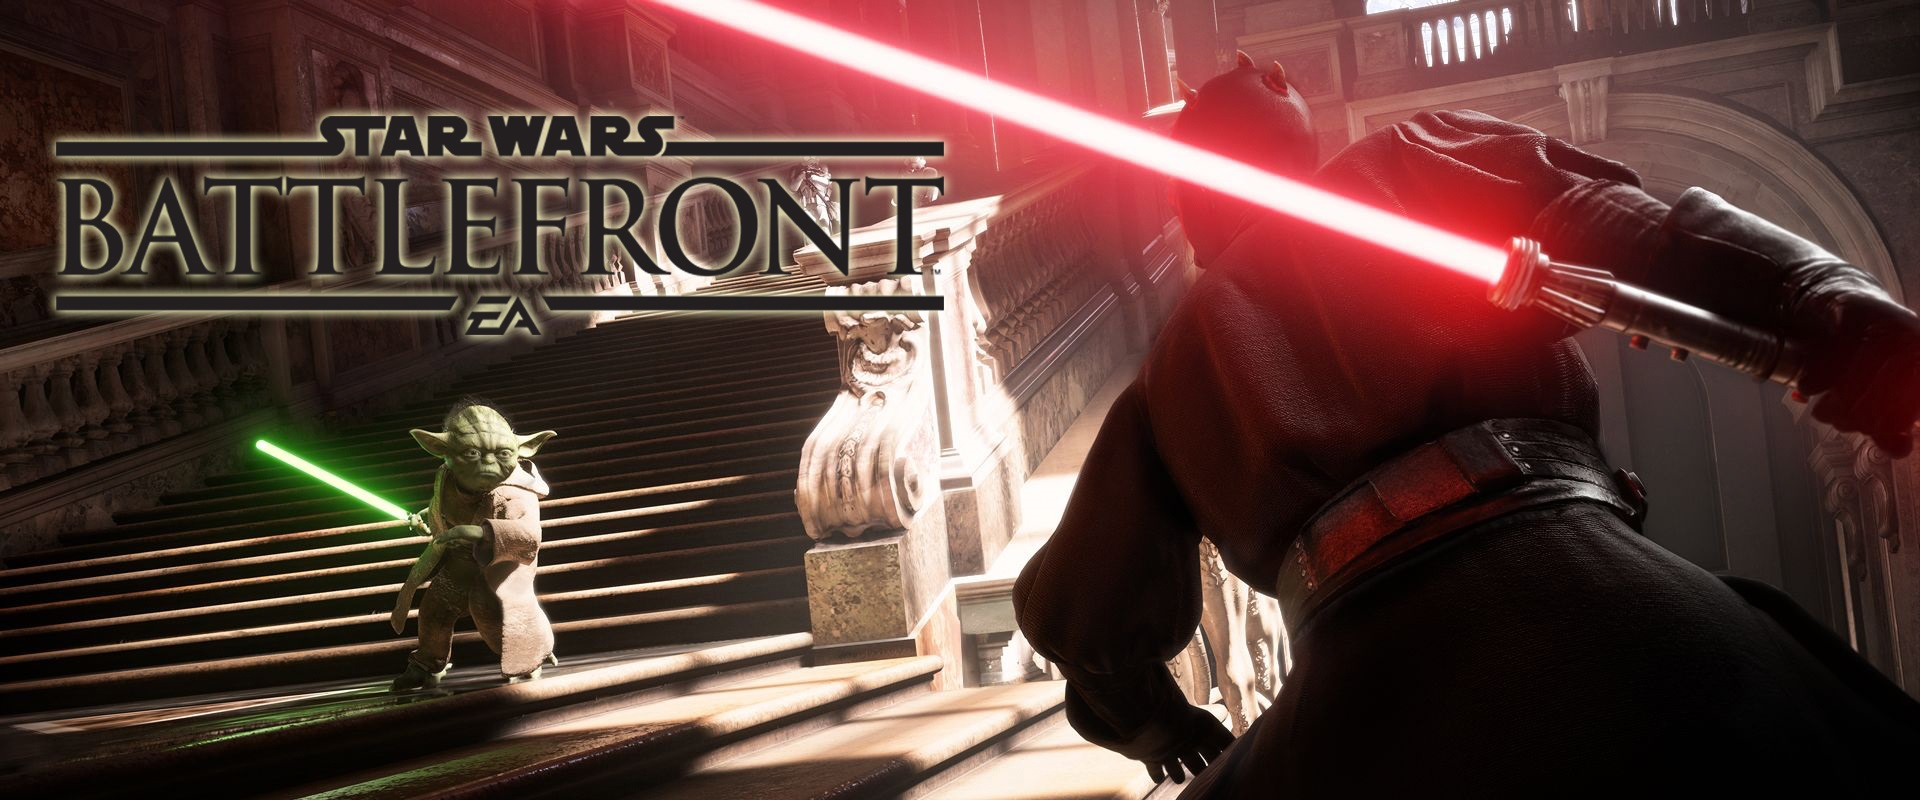 Star Wars Battlefront 2 features